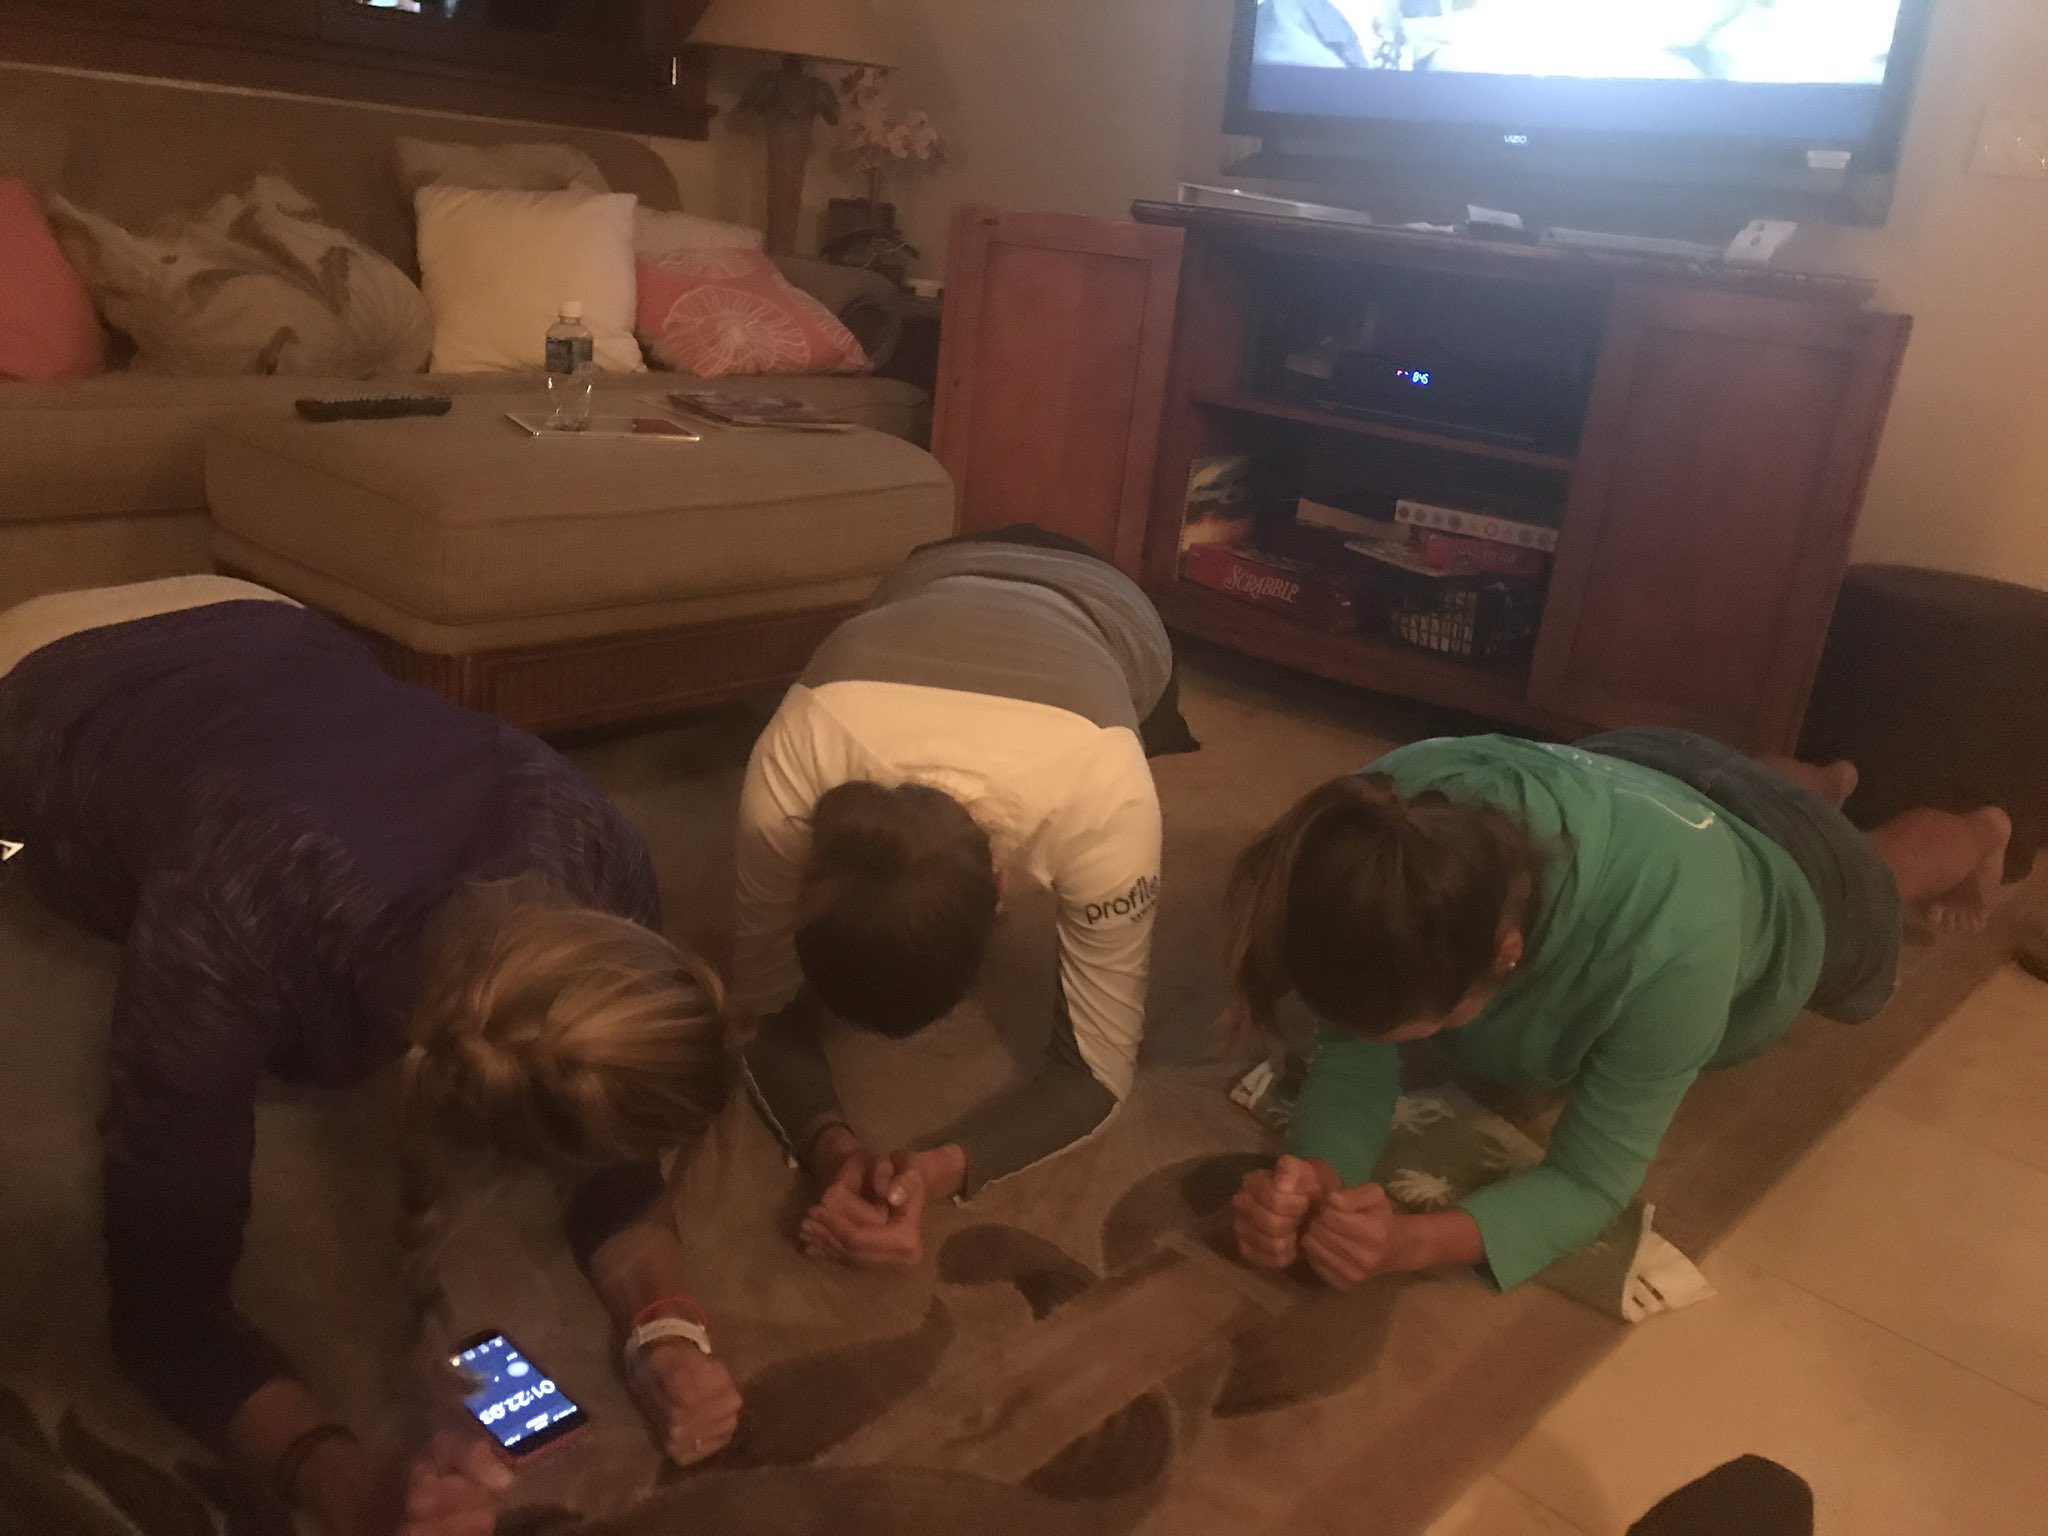 Plank challenge 😂😂😂. @kktamulis made it 3M 30S @Dori_Carter @KimKaufmanGolf made it 2M 😍😍. Way to go girls https://t.co/exak8OSGHS